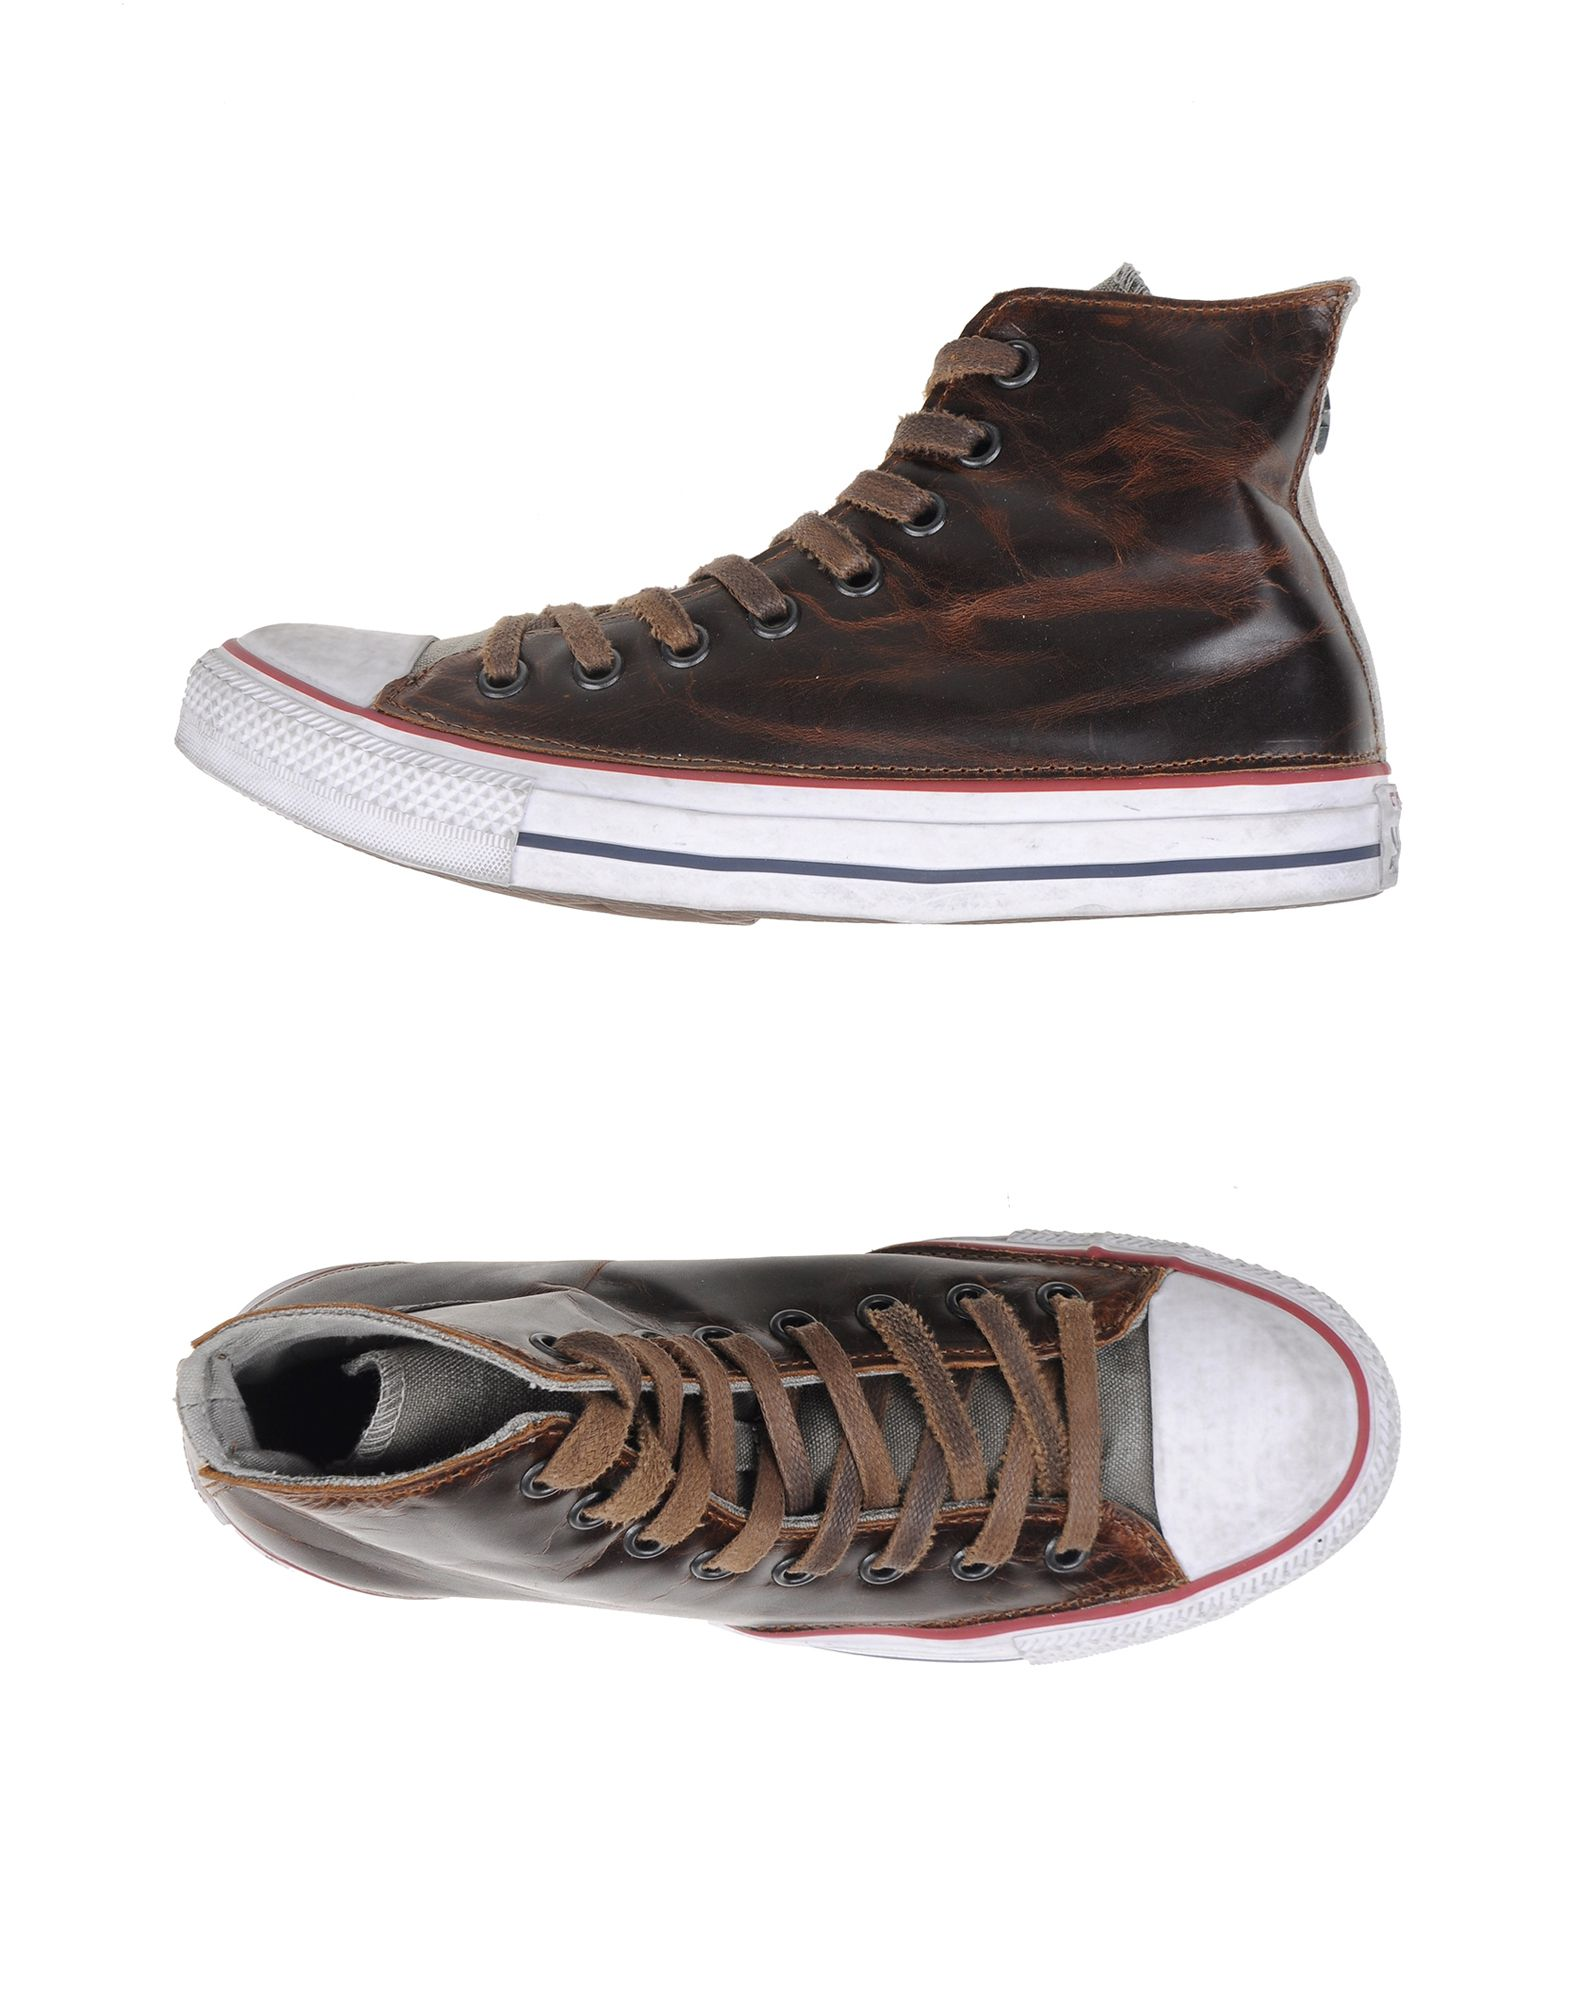 b618cbbee5d3 Converse Limited Edition All Star Hi Canvas Leather Ltd - Sneakers ...